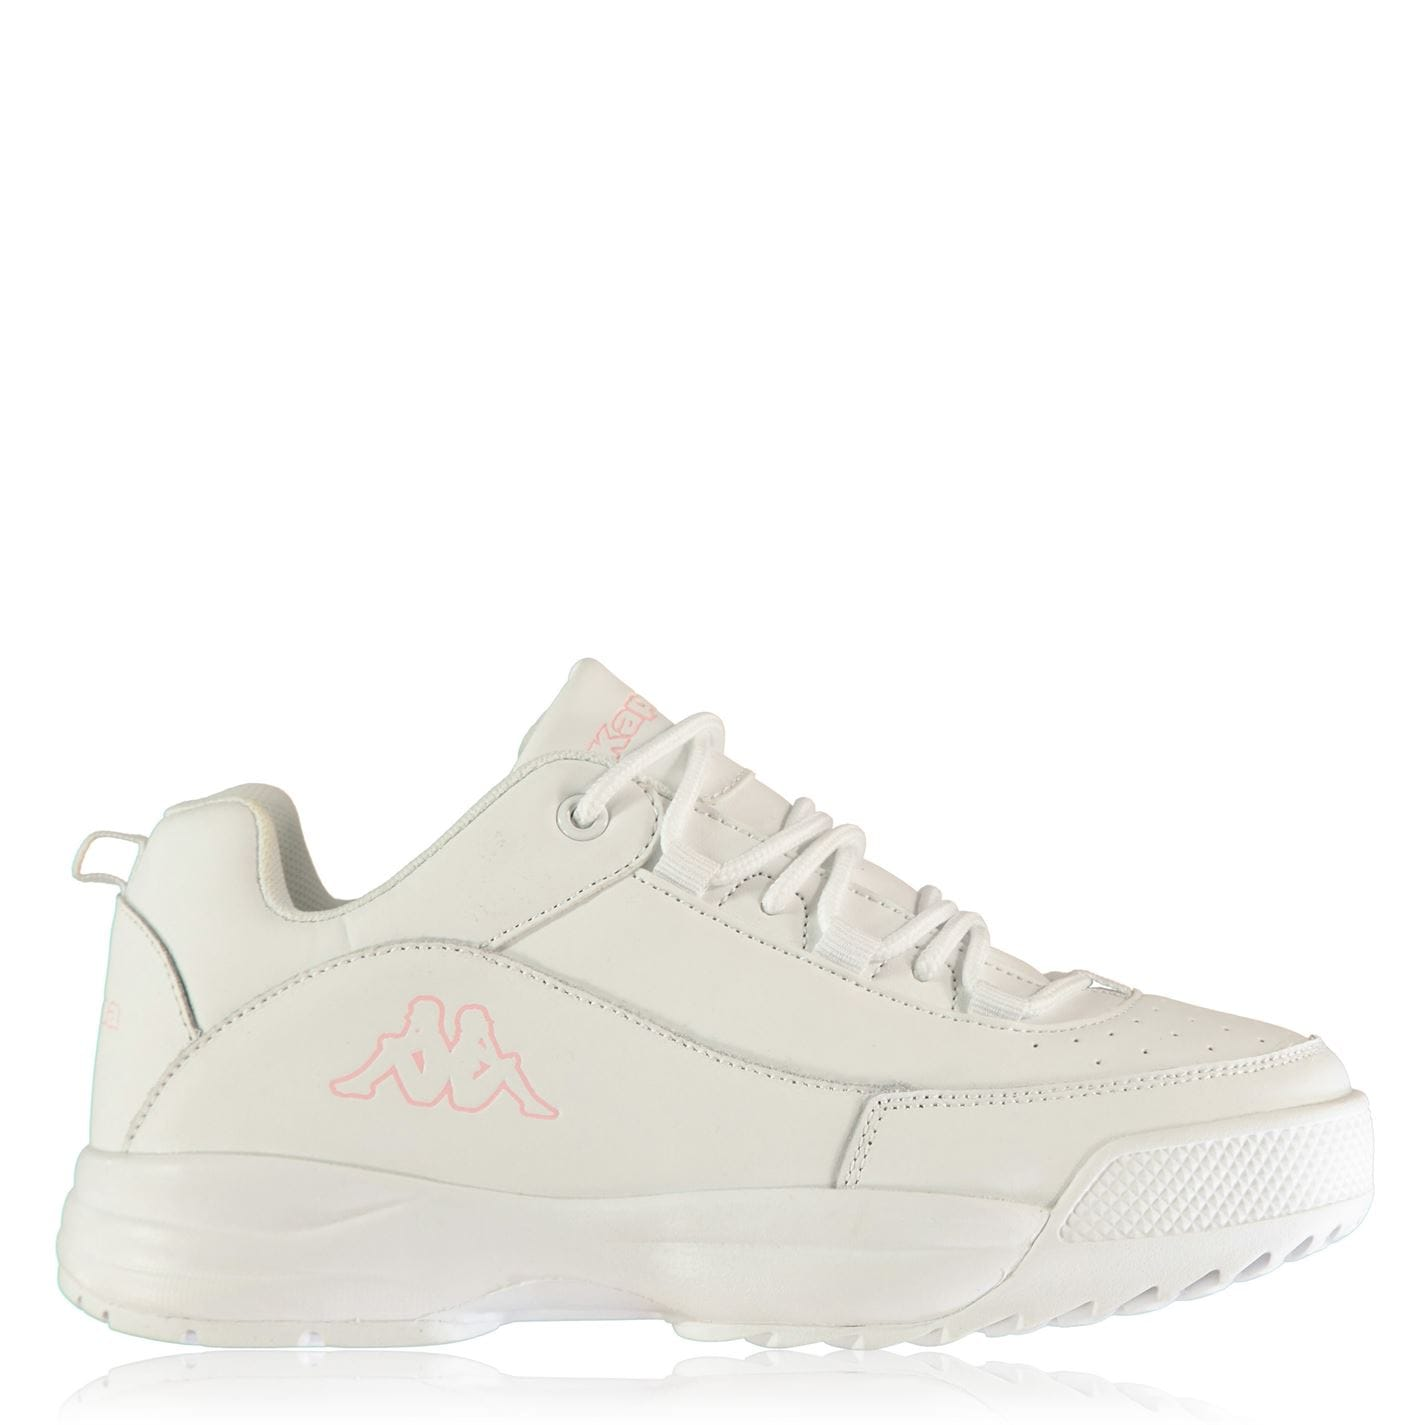 Kappa Montague Childrens Trainers White/Pink